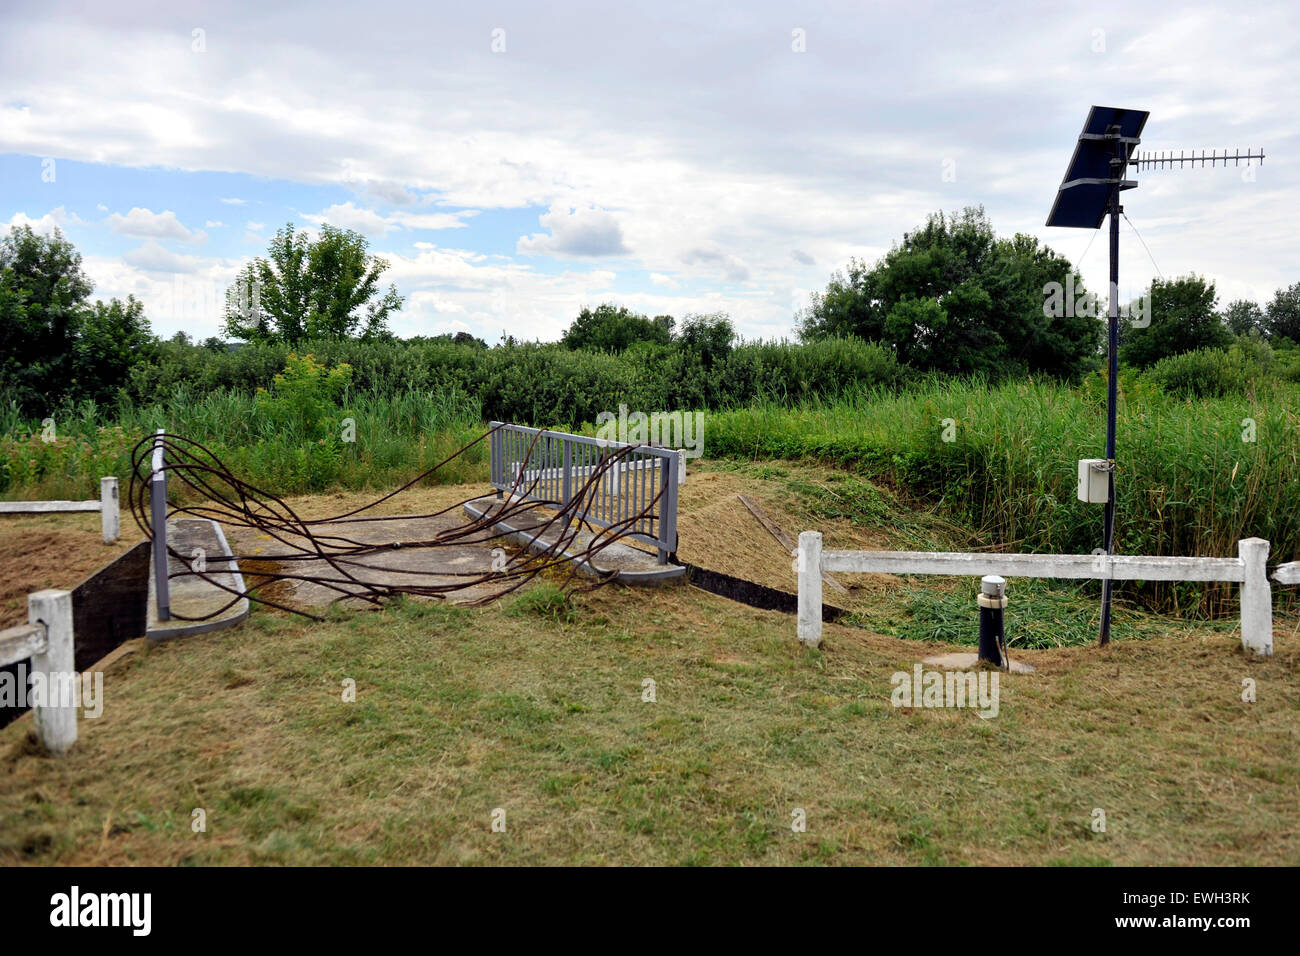 Asotthalom, Hungary. 25th June, 2015. The Hungarian Serbian border area near Asotthalom, Hungary, June 25, 2015. - Stock Image